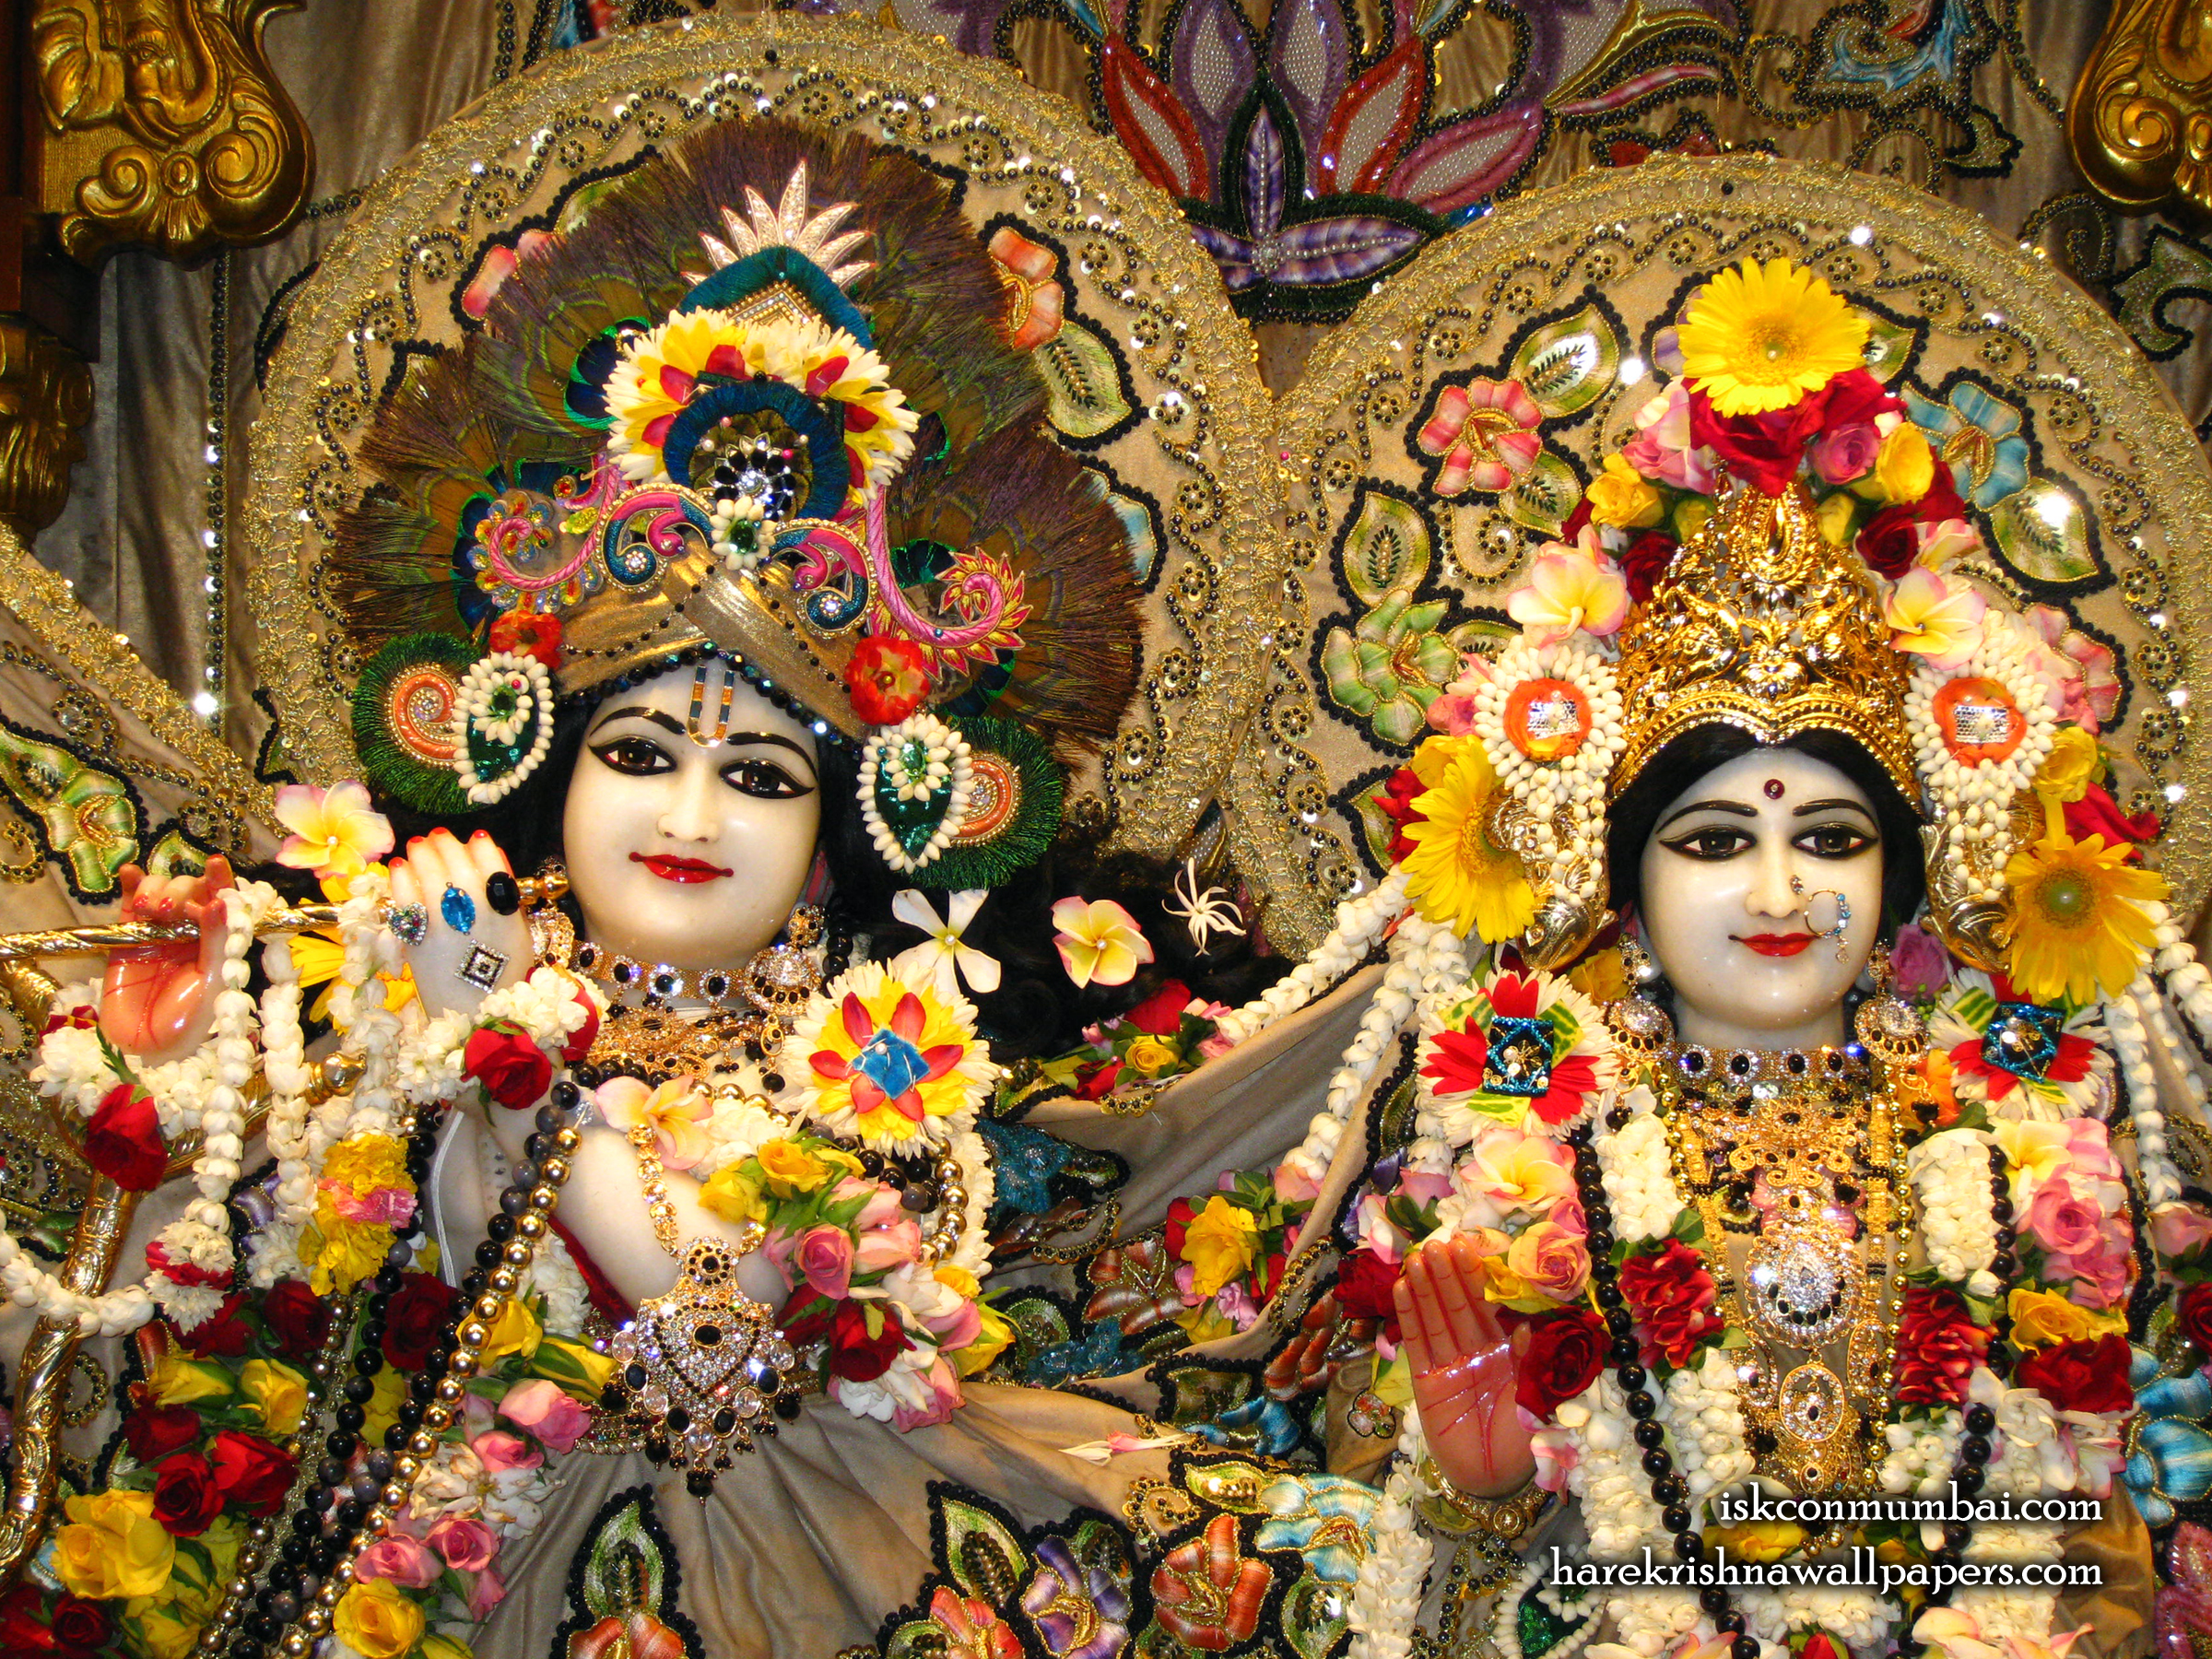 Sri Sri Radha Rasabihari Close up Wallpaper (006) Size 2400x1800 Download